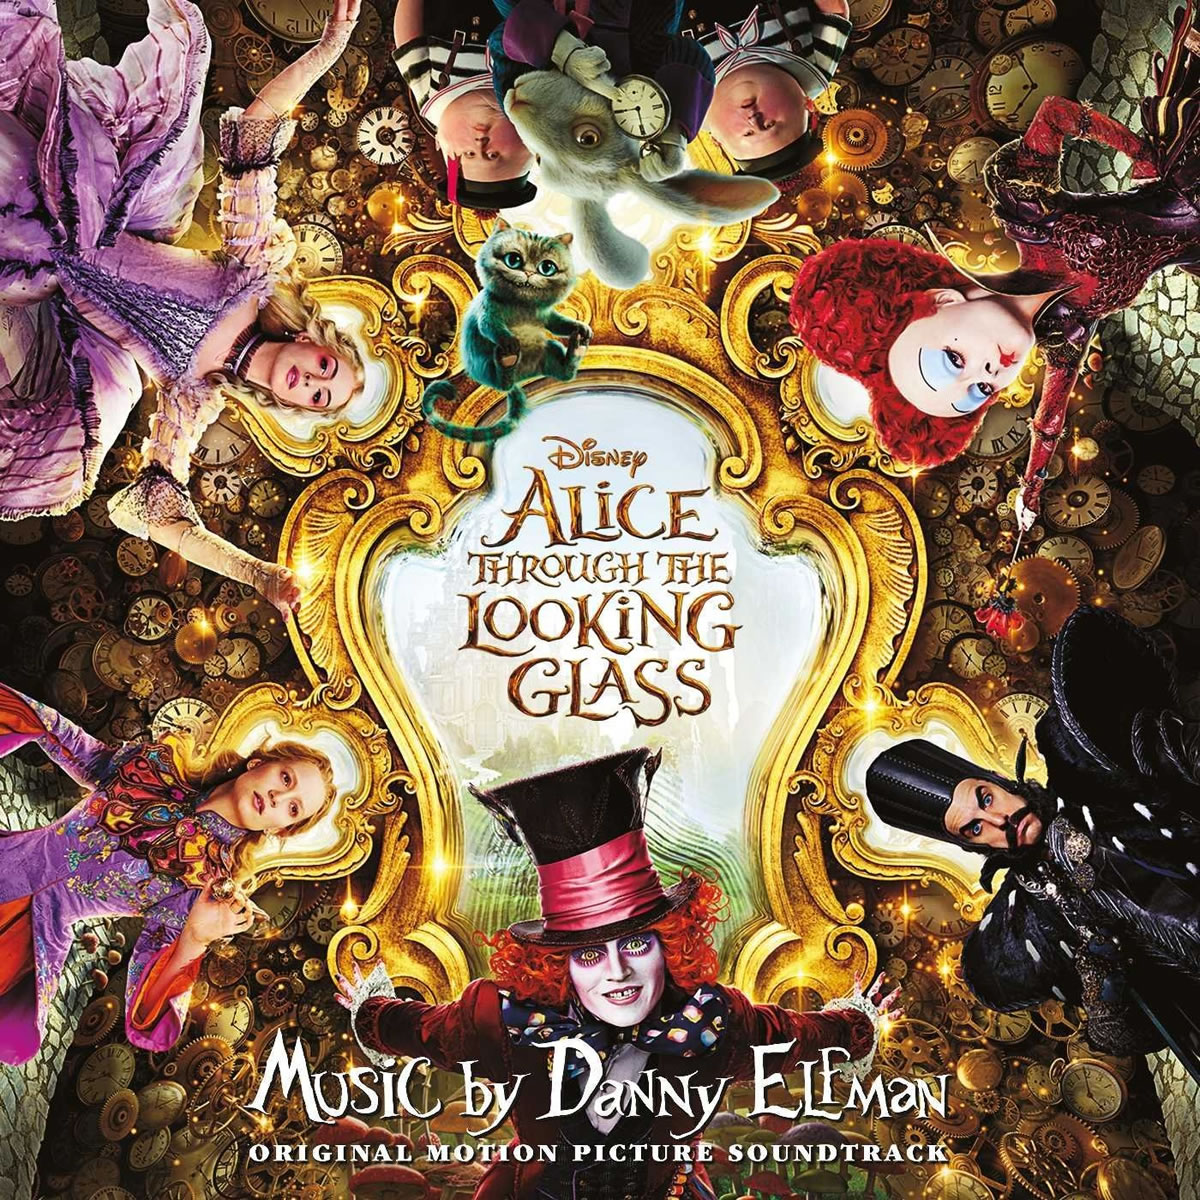 ALICE THROUGH THE LOOKING GLASS - THE ORIGINAL MOTION PICTURE SOUNDTRACK (AUDIO CD)